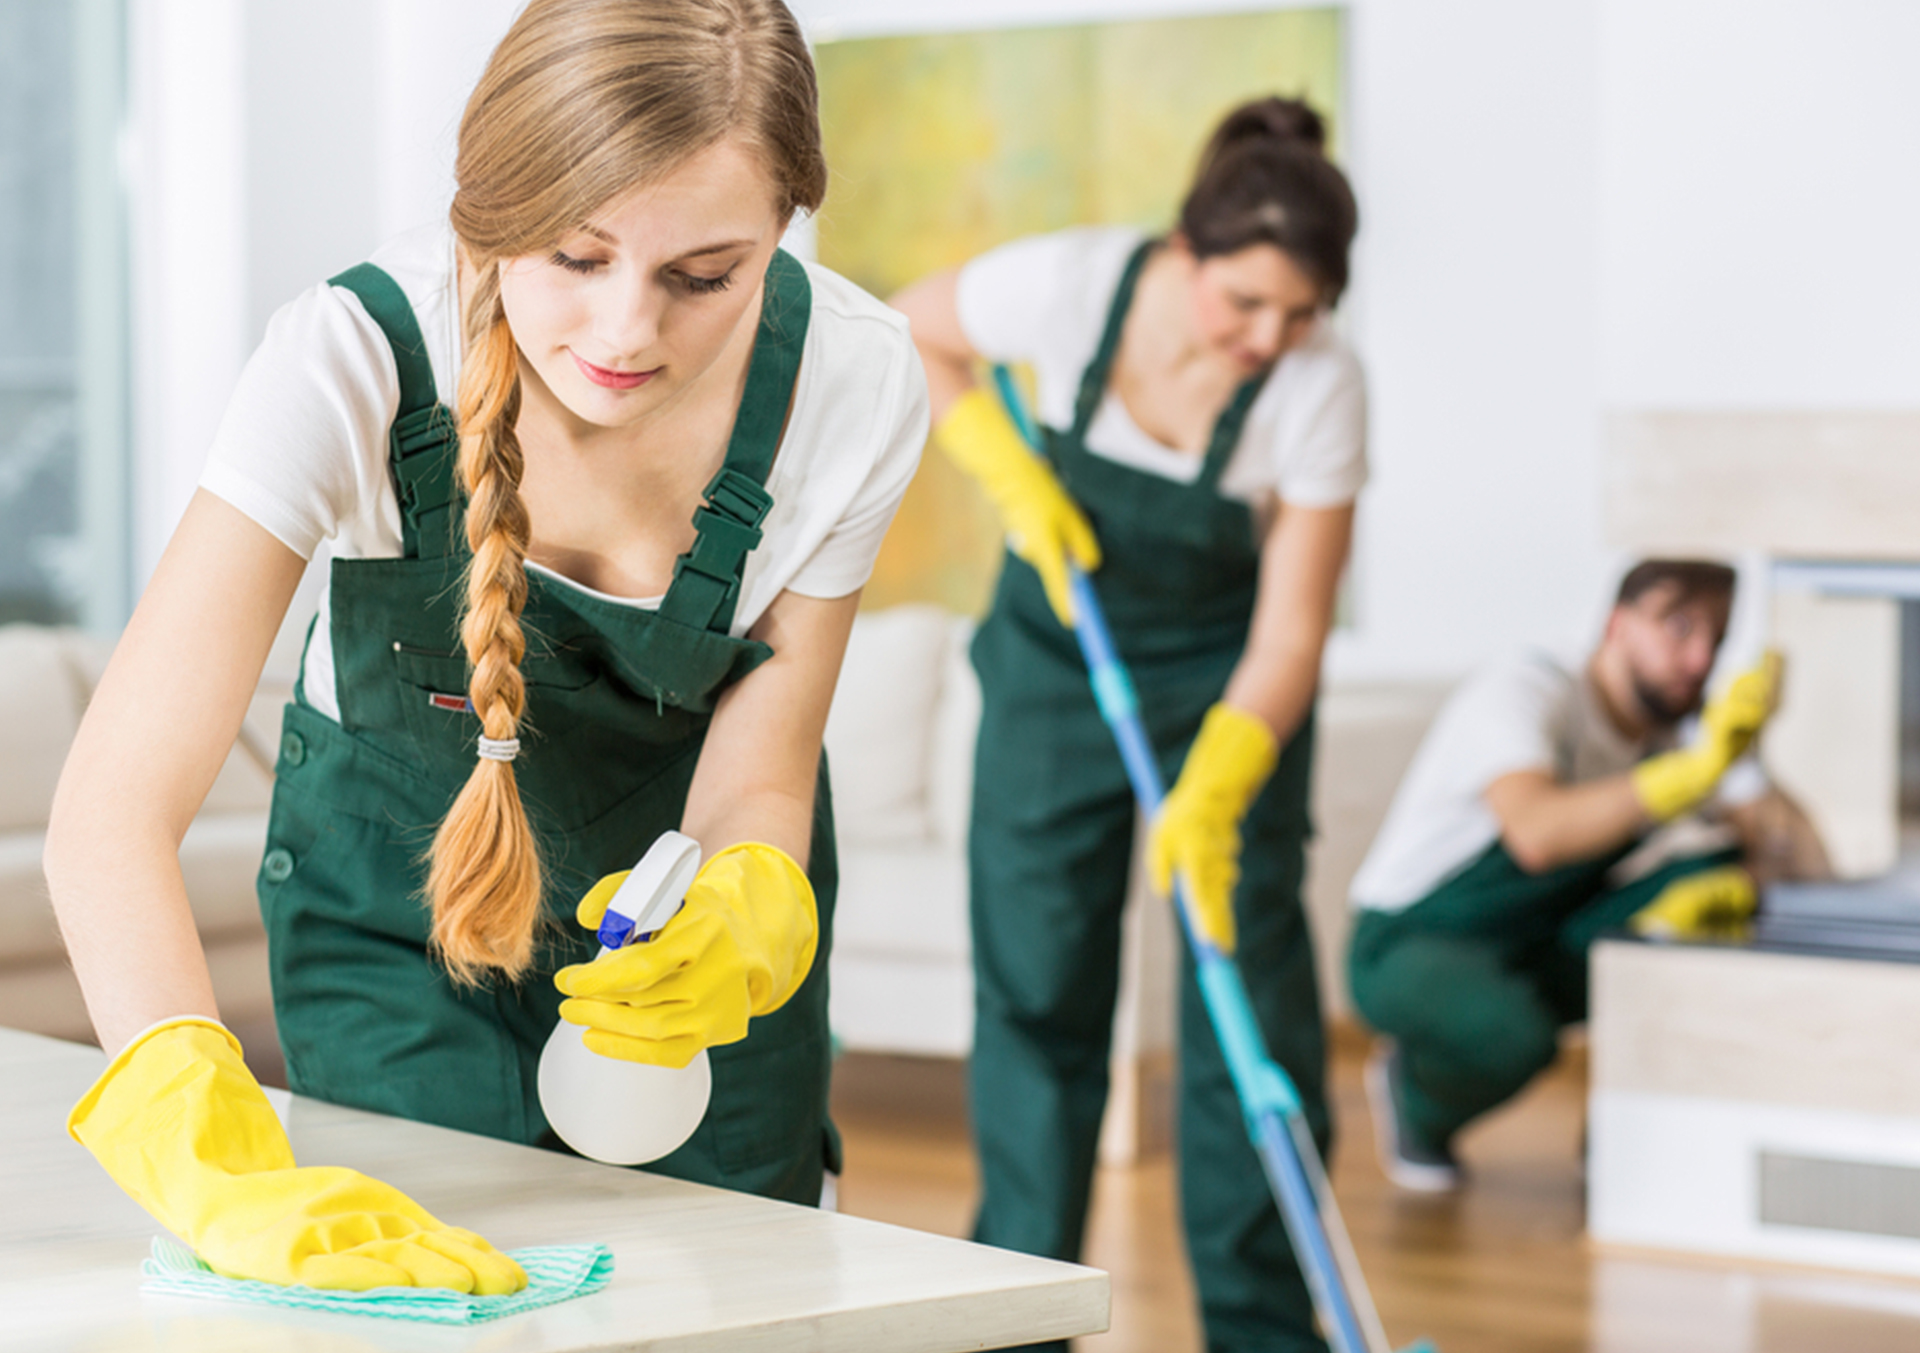 A Homeowner's Checklist for Professional Cleaning Services